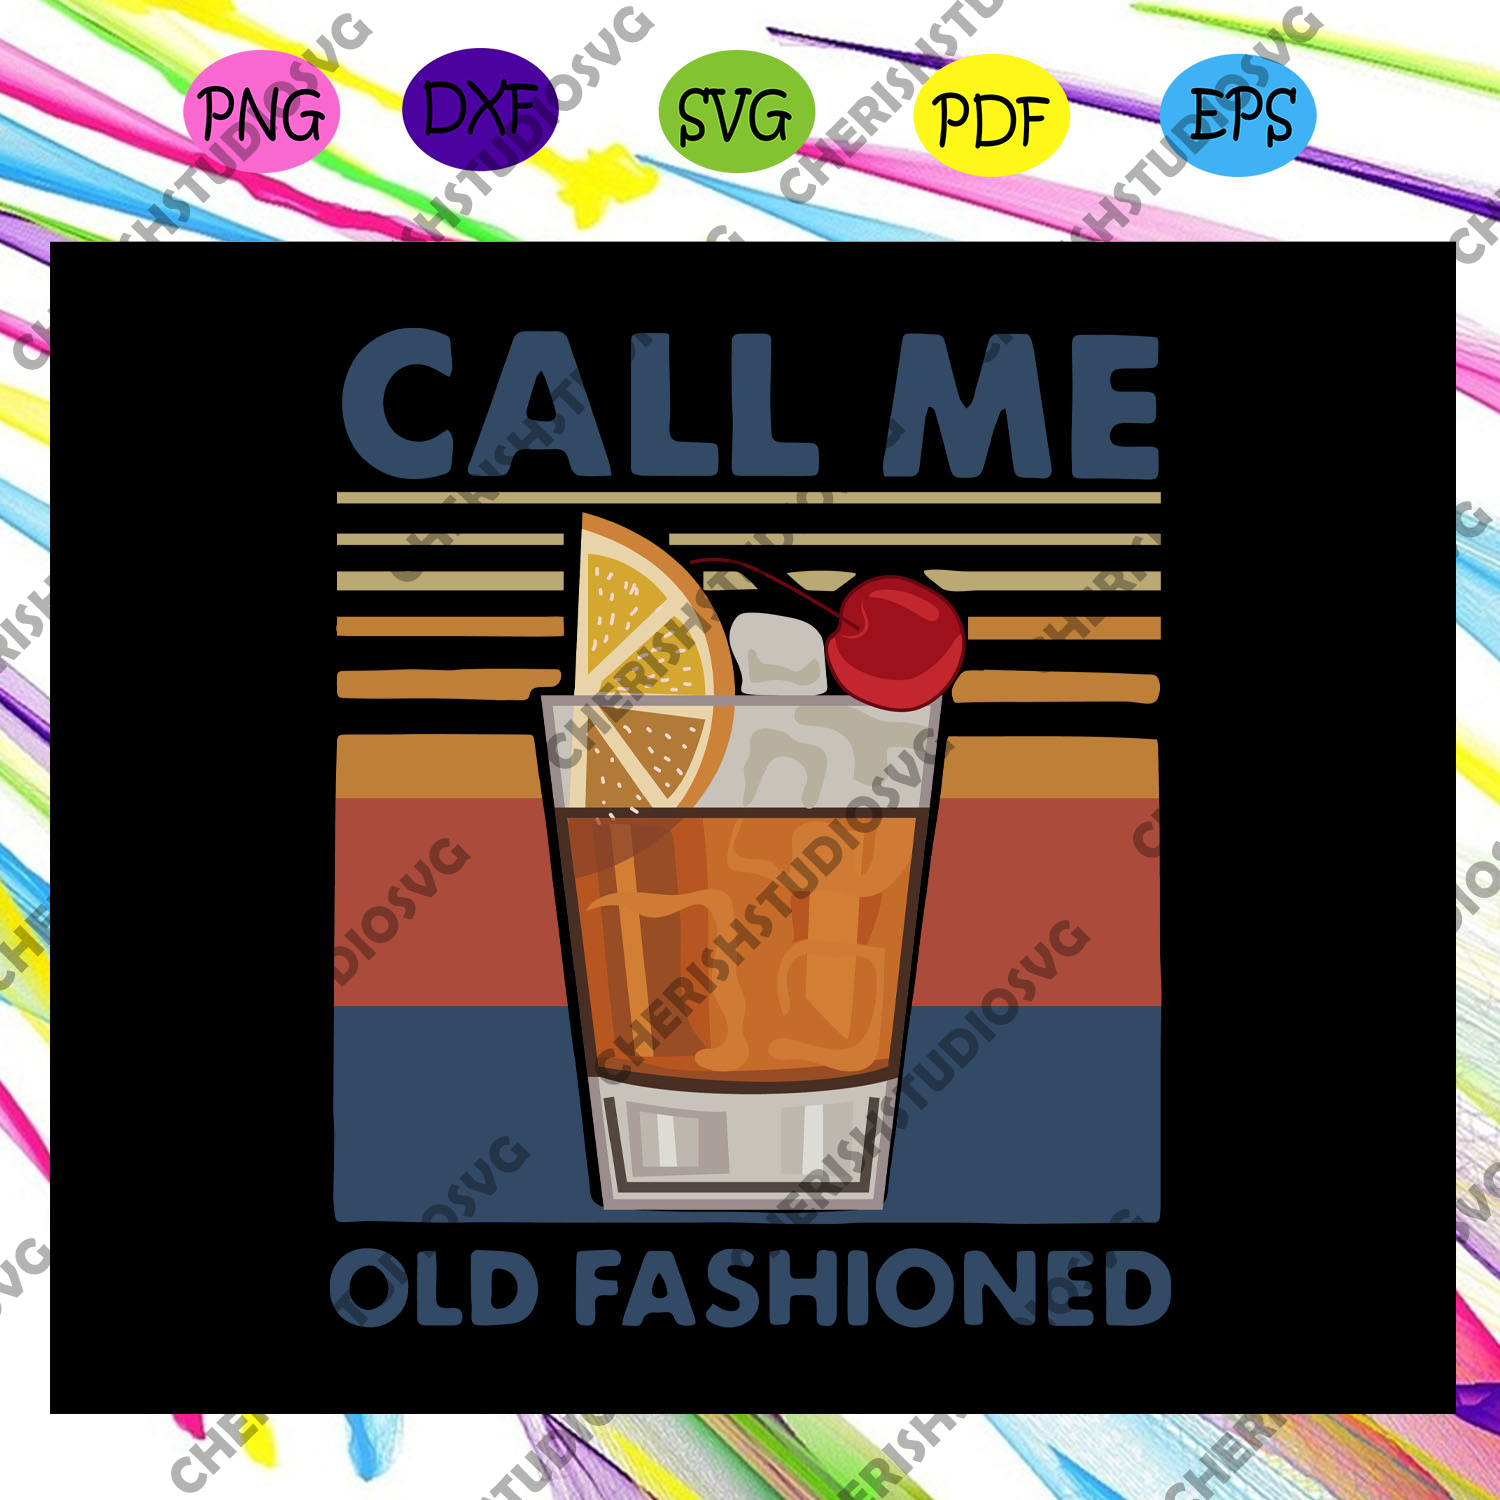 Call me old fashioned svg, vintage call me old fashioned svg, funny drinking svg, Whiskey svg, old fashioned svg, whiskey lover, whiskey lover gift, drinking lover, Files For Silhouette, Files For Cricut, SVG, DXF, EPS, PNG, Instant Download